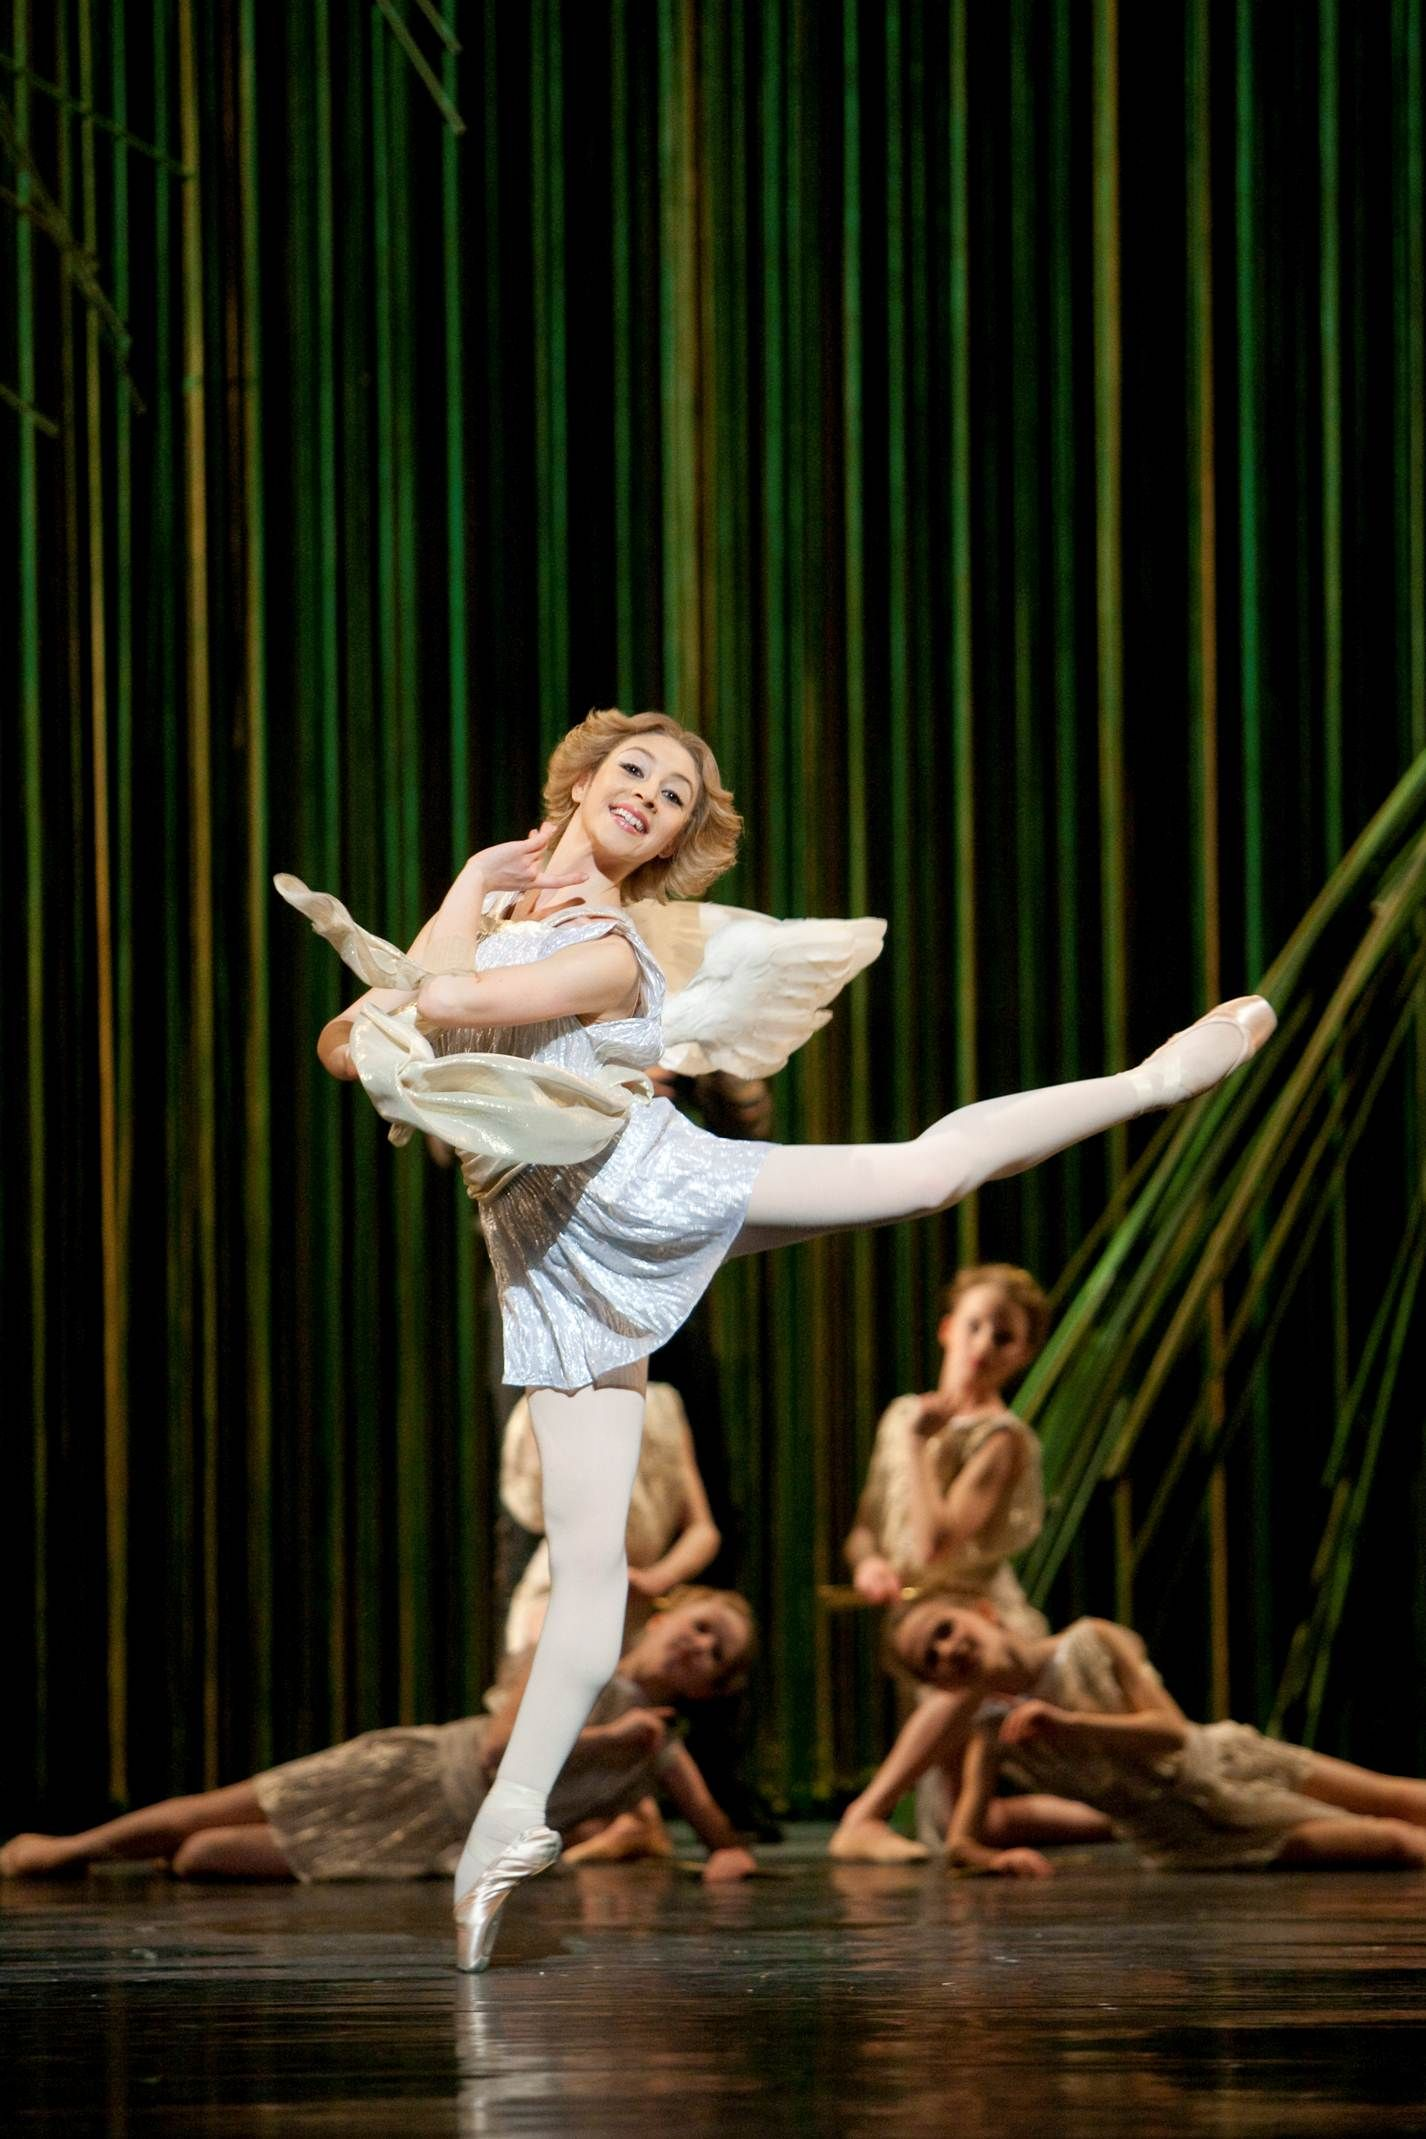 """Maia Makhateli as Cupid in """"Don Quixote"""" (Het Nationale Ballet). Photo by Angela Sterling"""